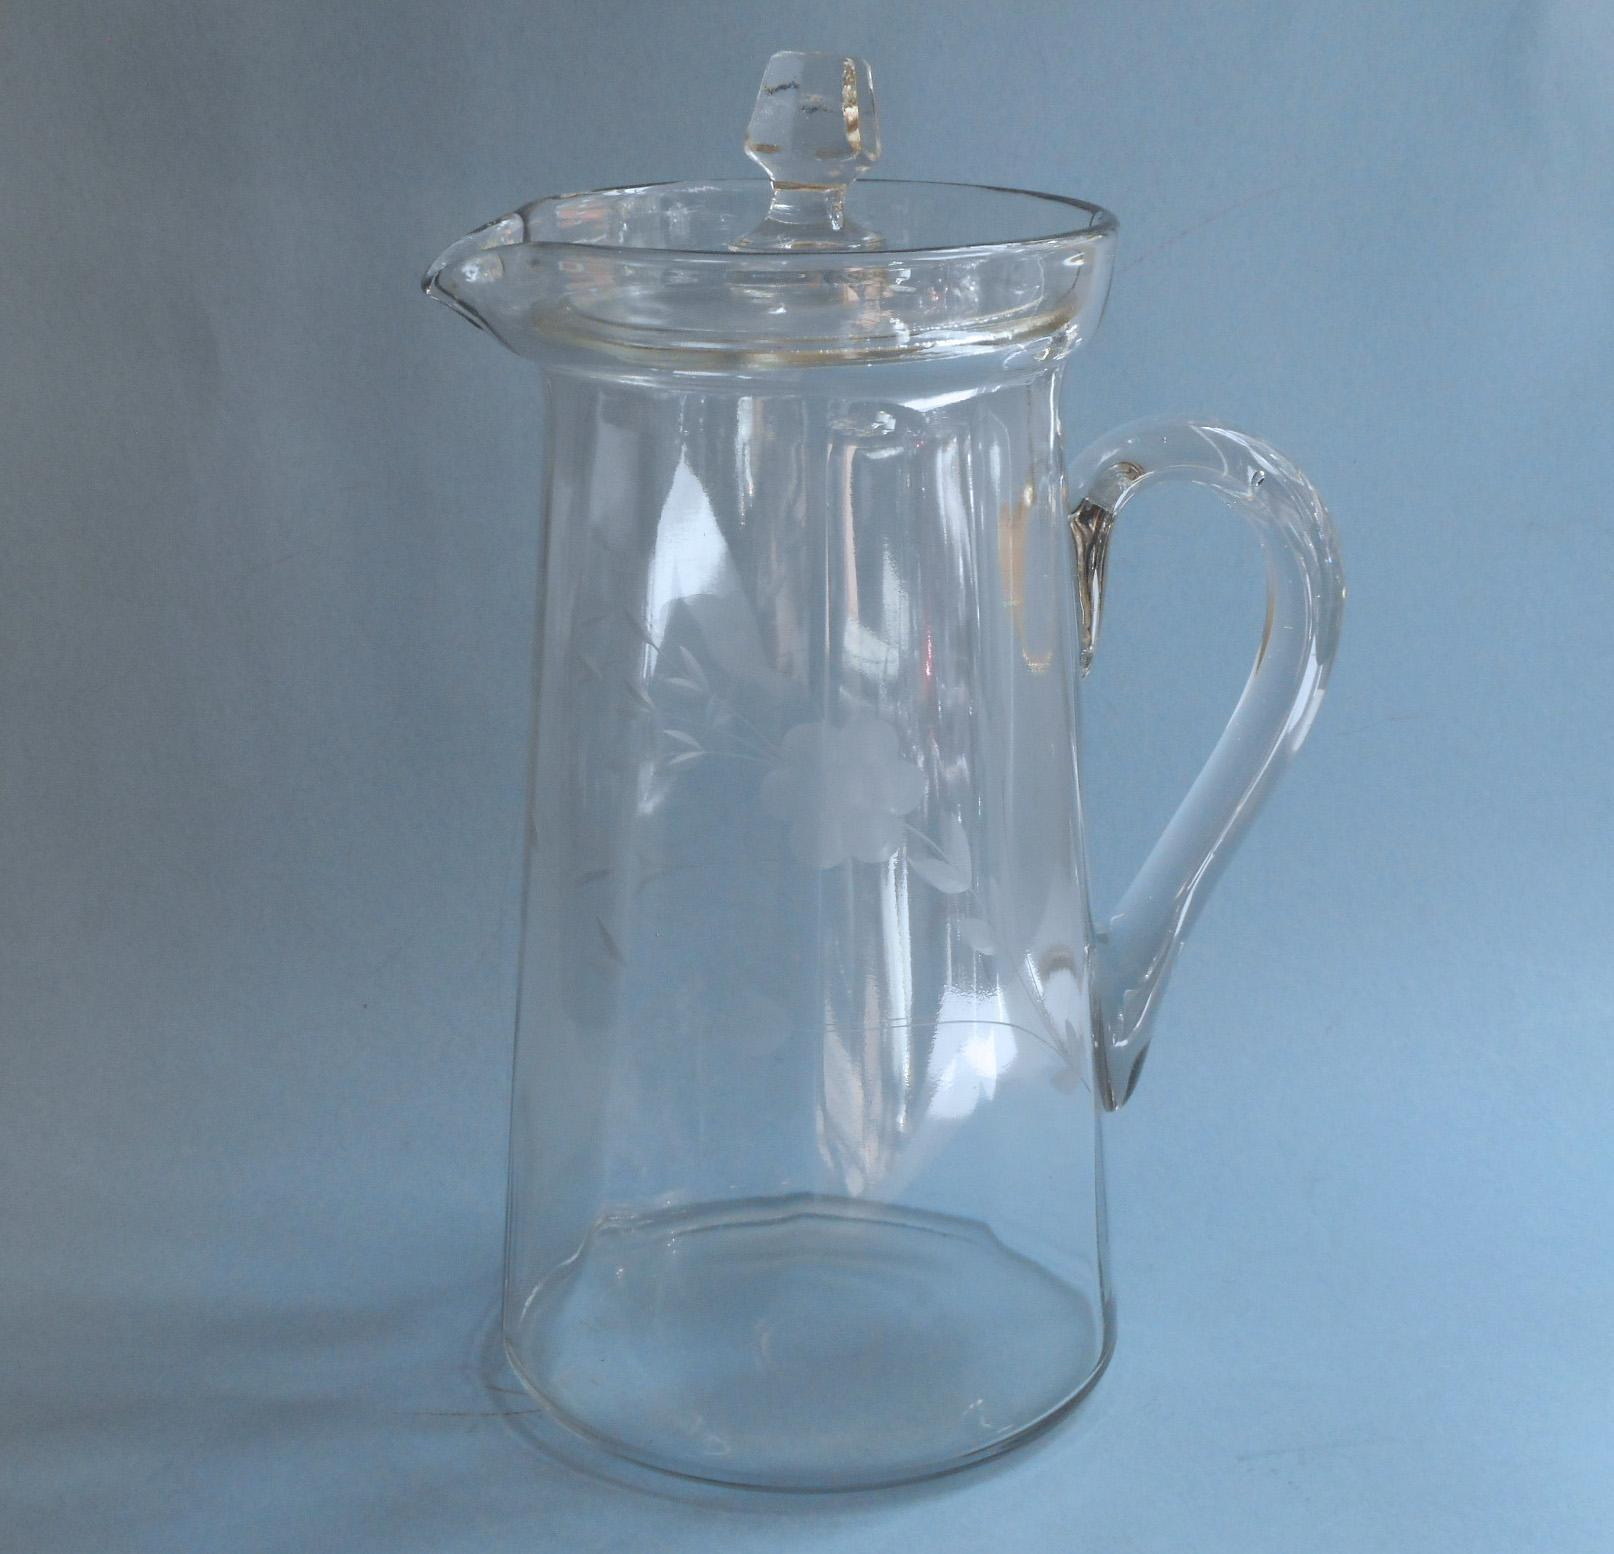 antique glass pitcher w lid engraved flowers lemonade iced tea  - roll over large image to magnify click large image to zoom